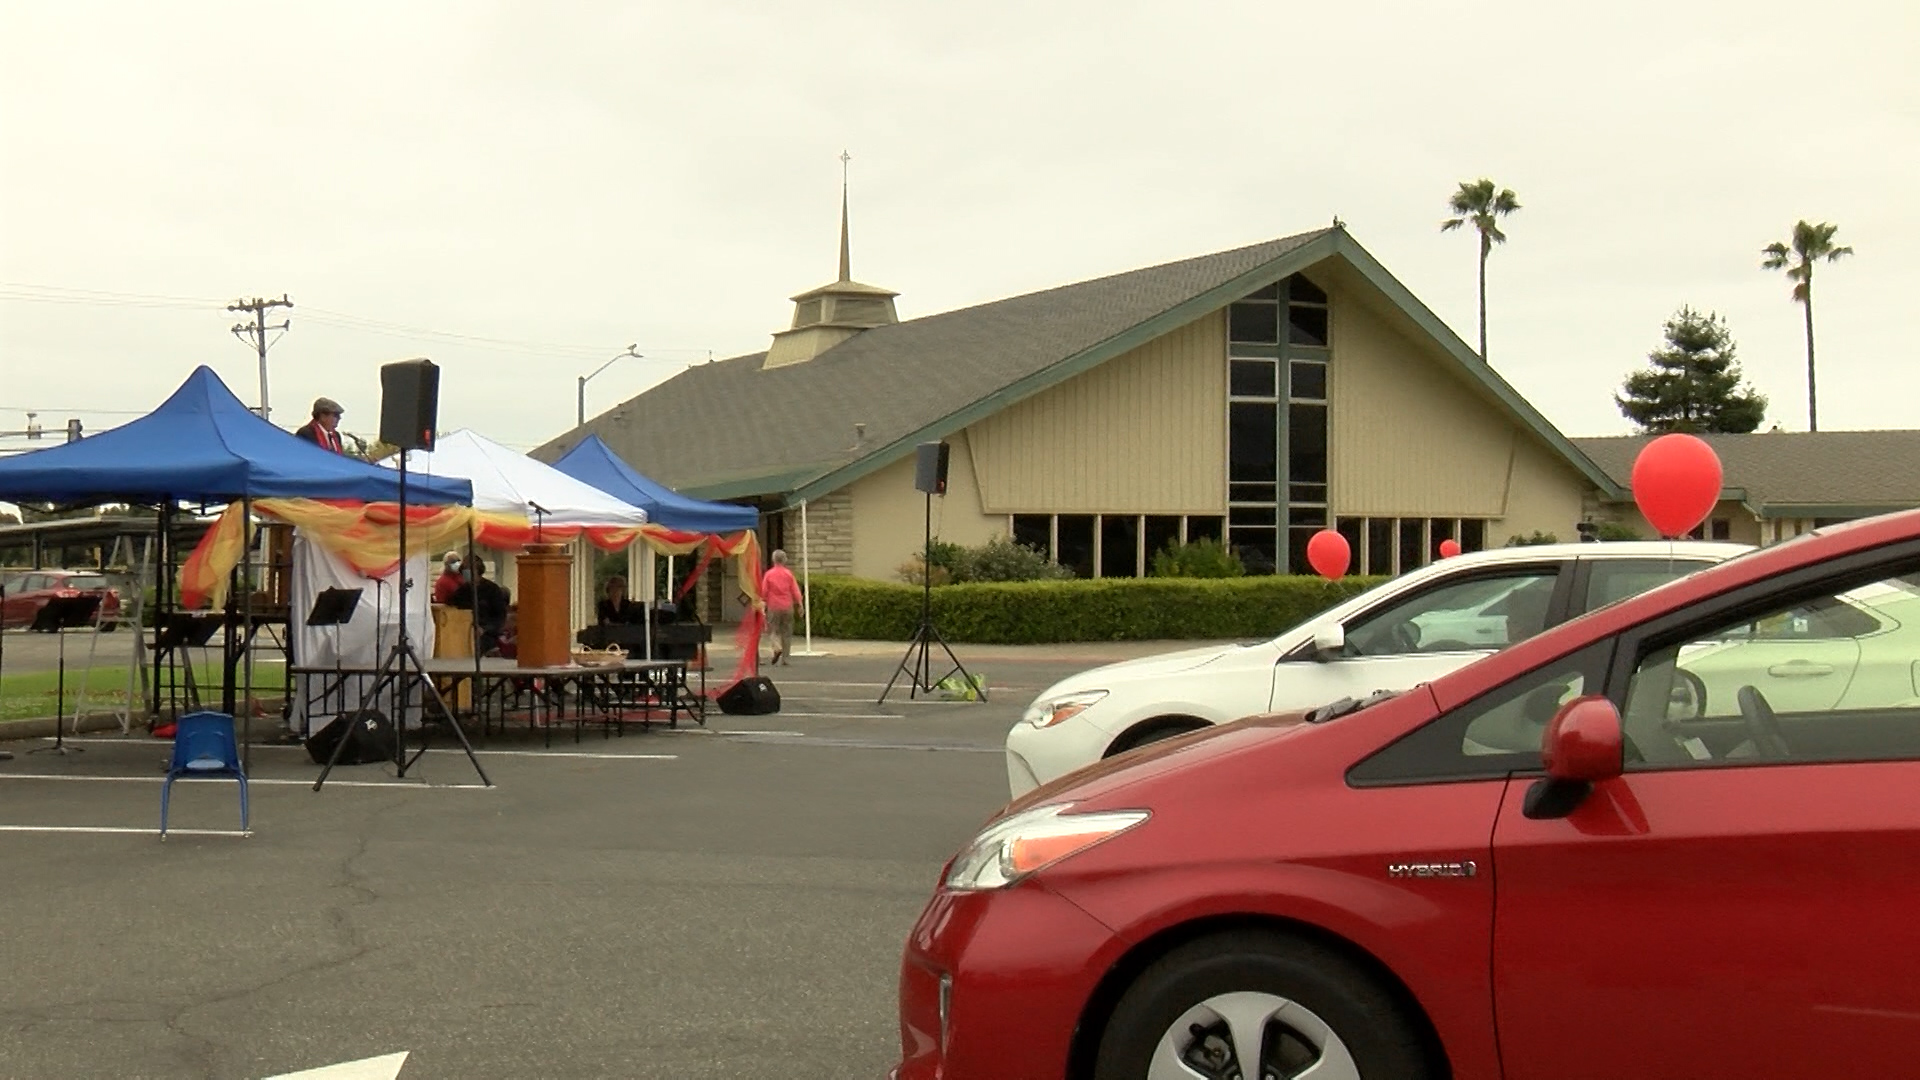 SPECIAL REPORT: Central Coast churches differ on re-opening amid COVID-19 pandemic